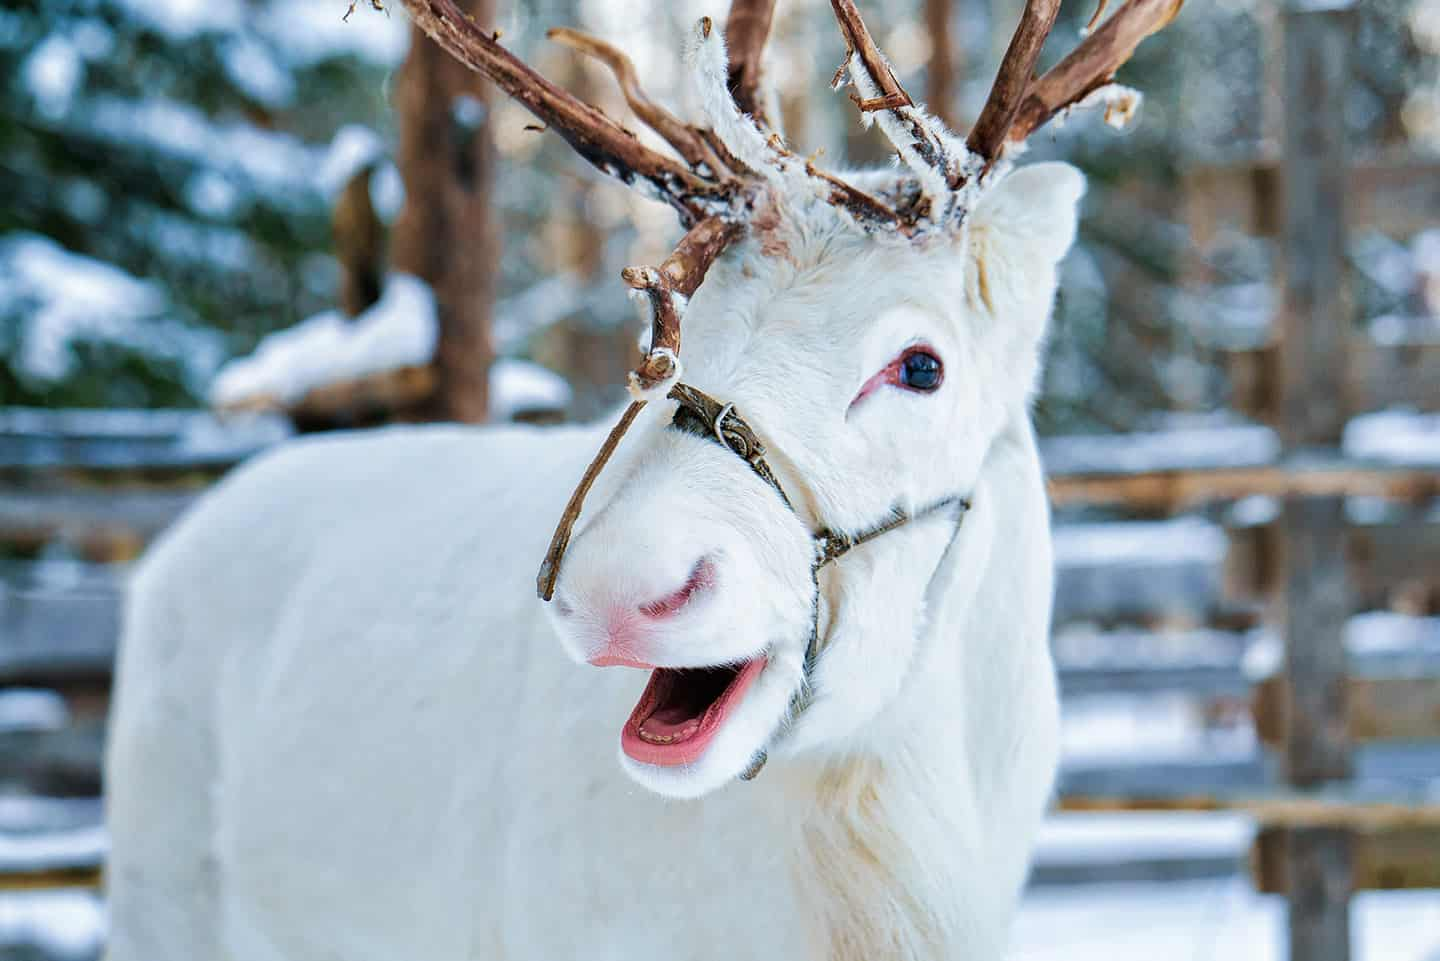 Image of a reindeer at Rovaniemi, Finland